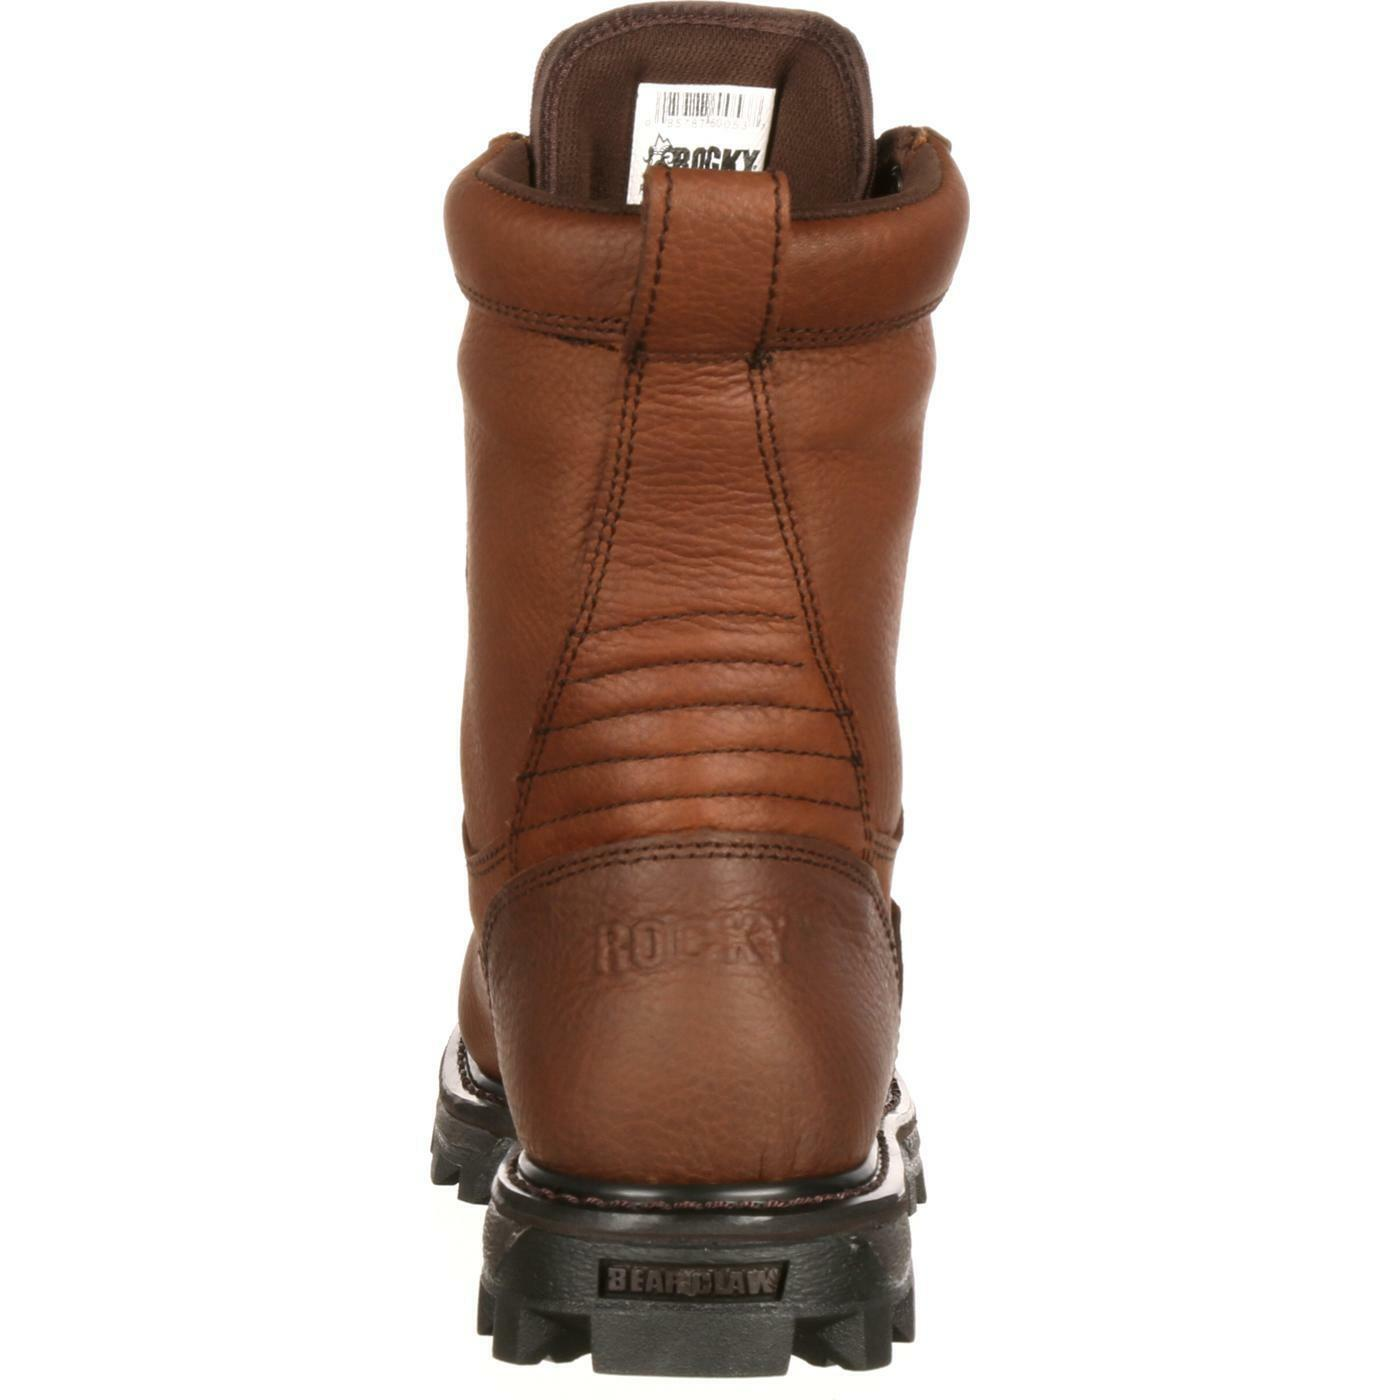 ROCKY BEARCLAW 3D 200G INSULATED G-TEX OUTDOOR Stiefel Stiefel Stiefel 9237  ALL GrößeS - NEW 06a338